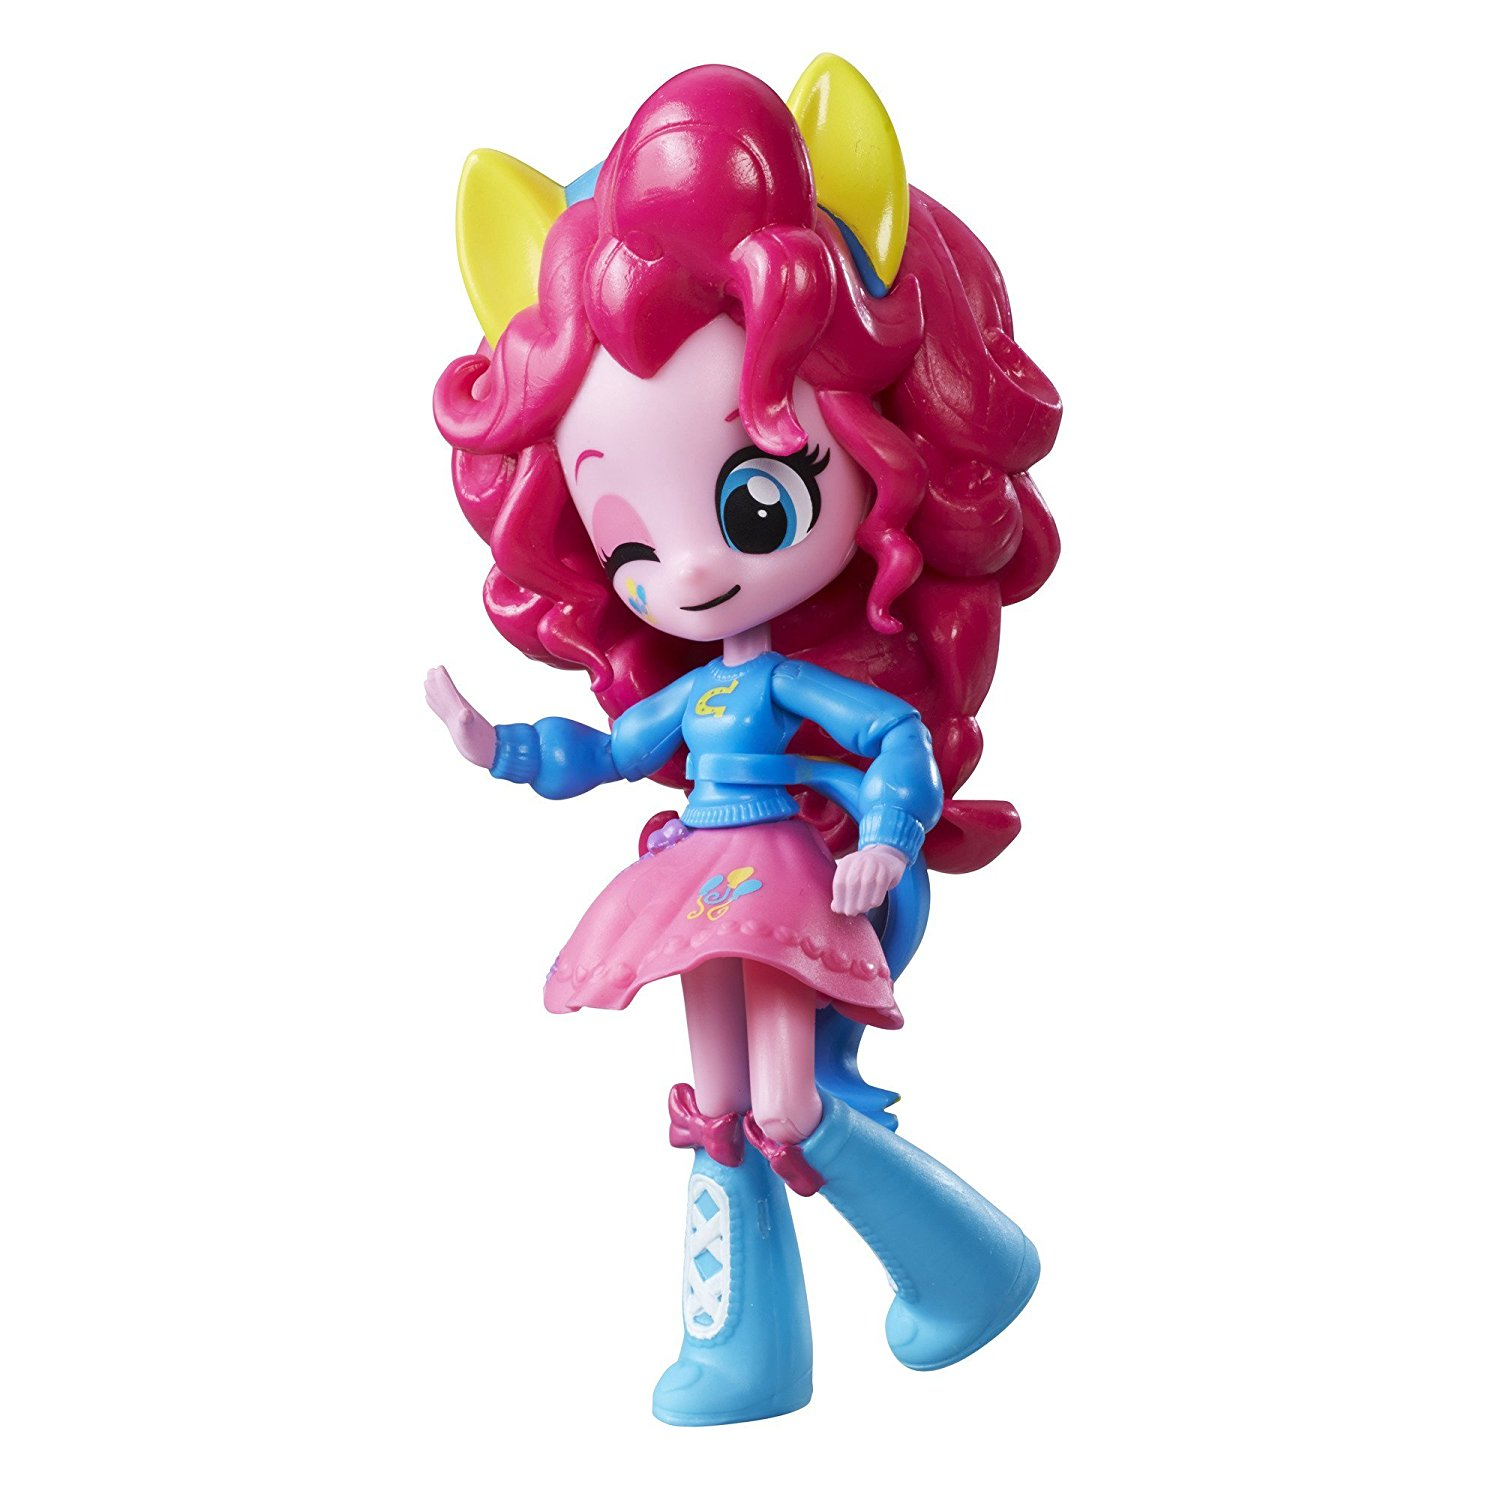 Equestria Girls Minis Pinkie Pie, Poseable doll with 9 points of articulation By My Little Pony Ship from US